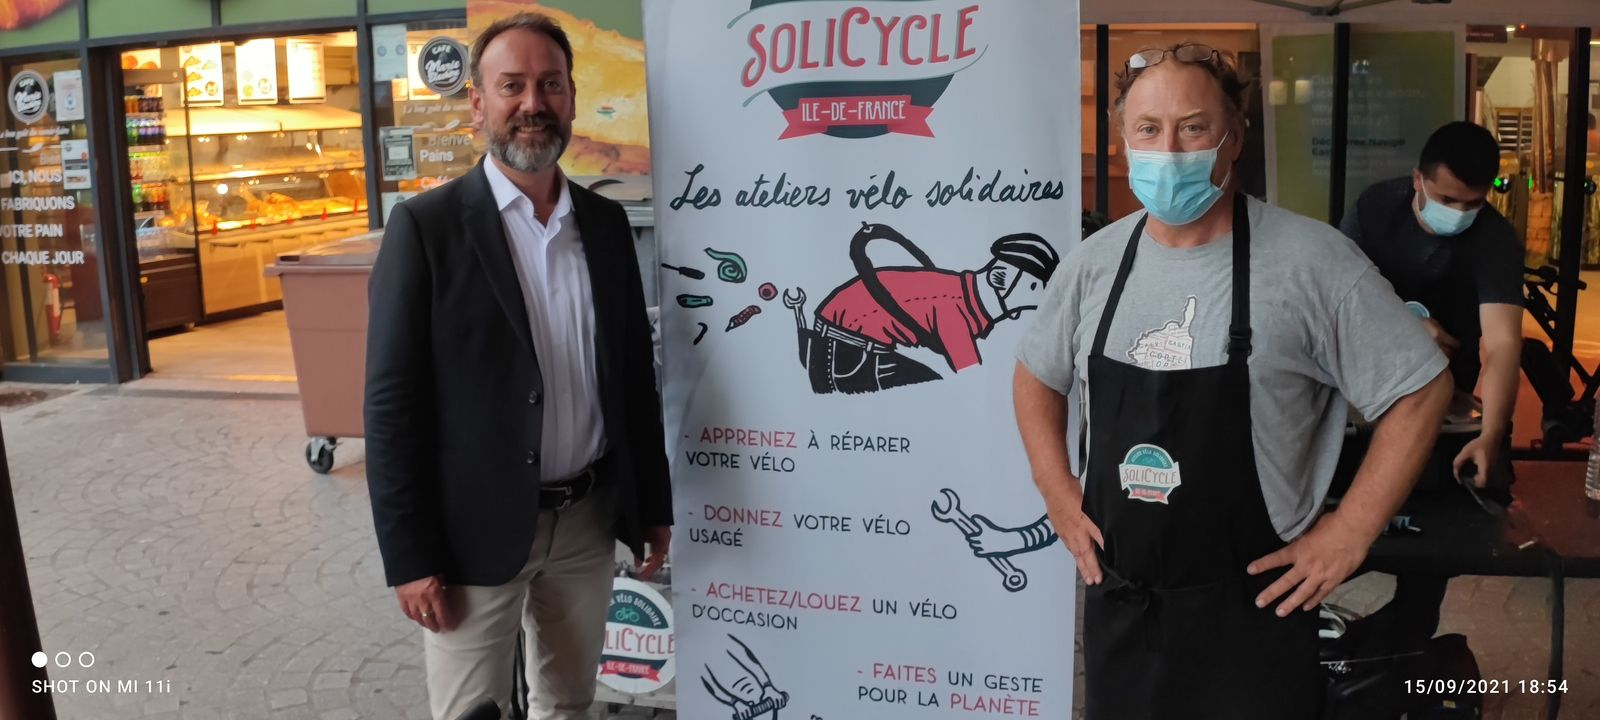 Atelier Solicycle gare de Colombes